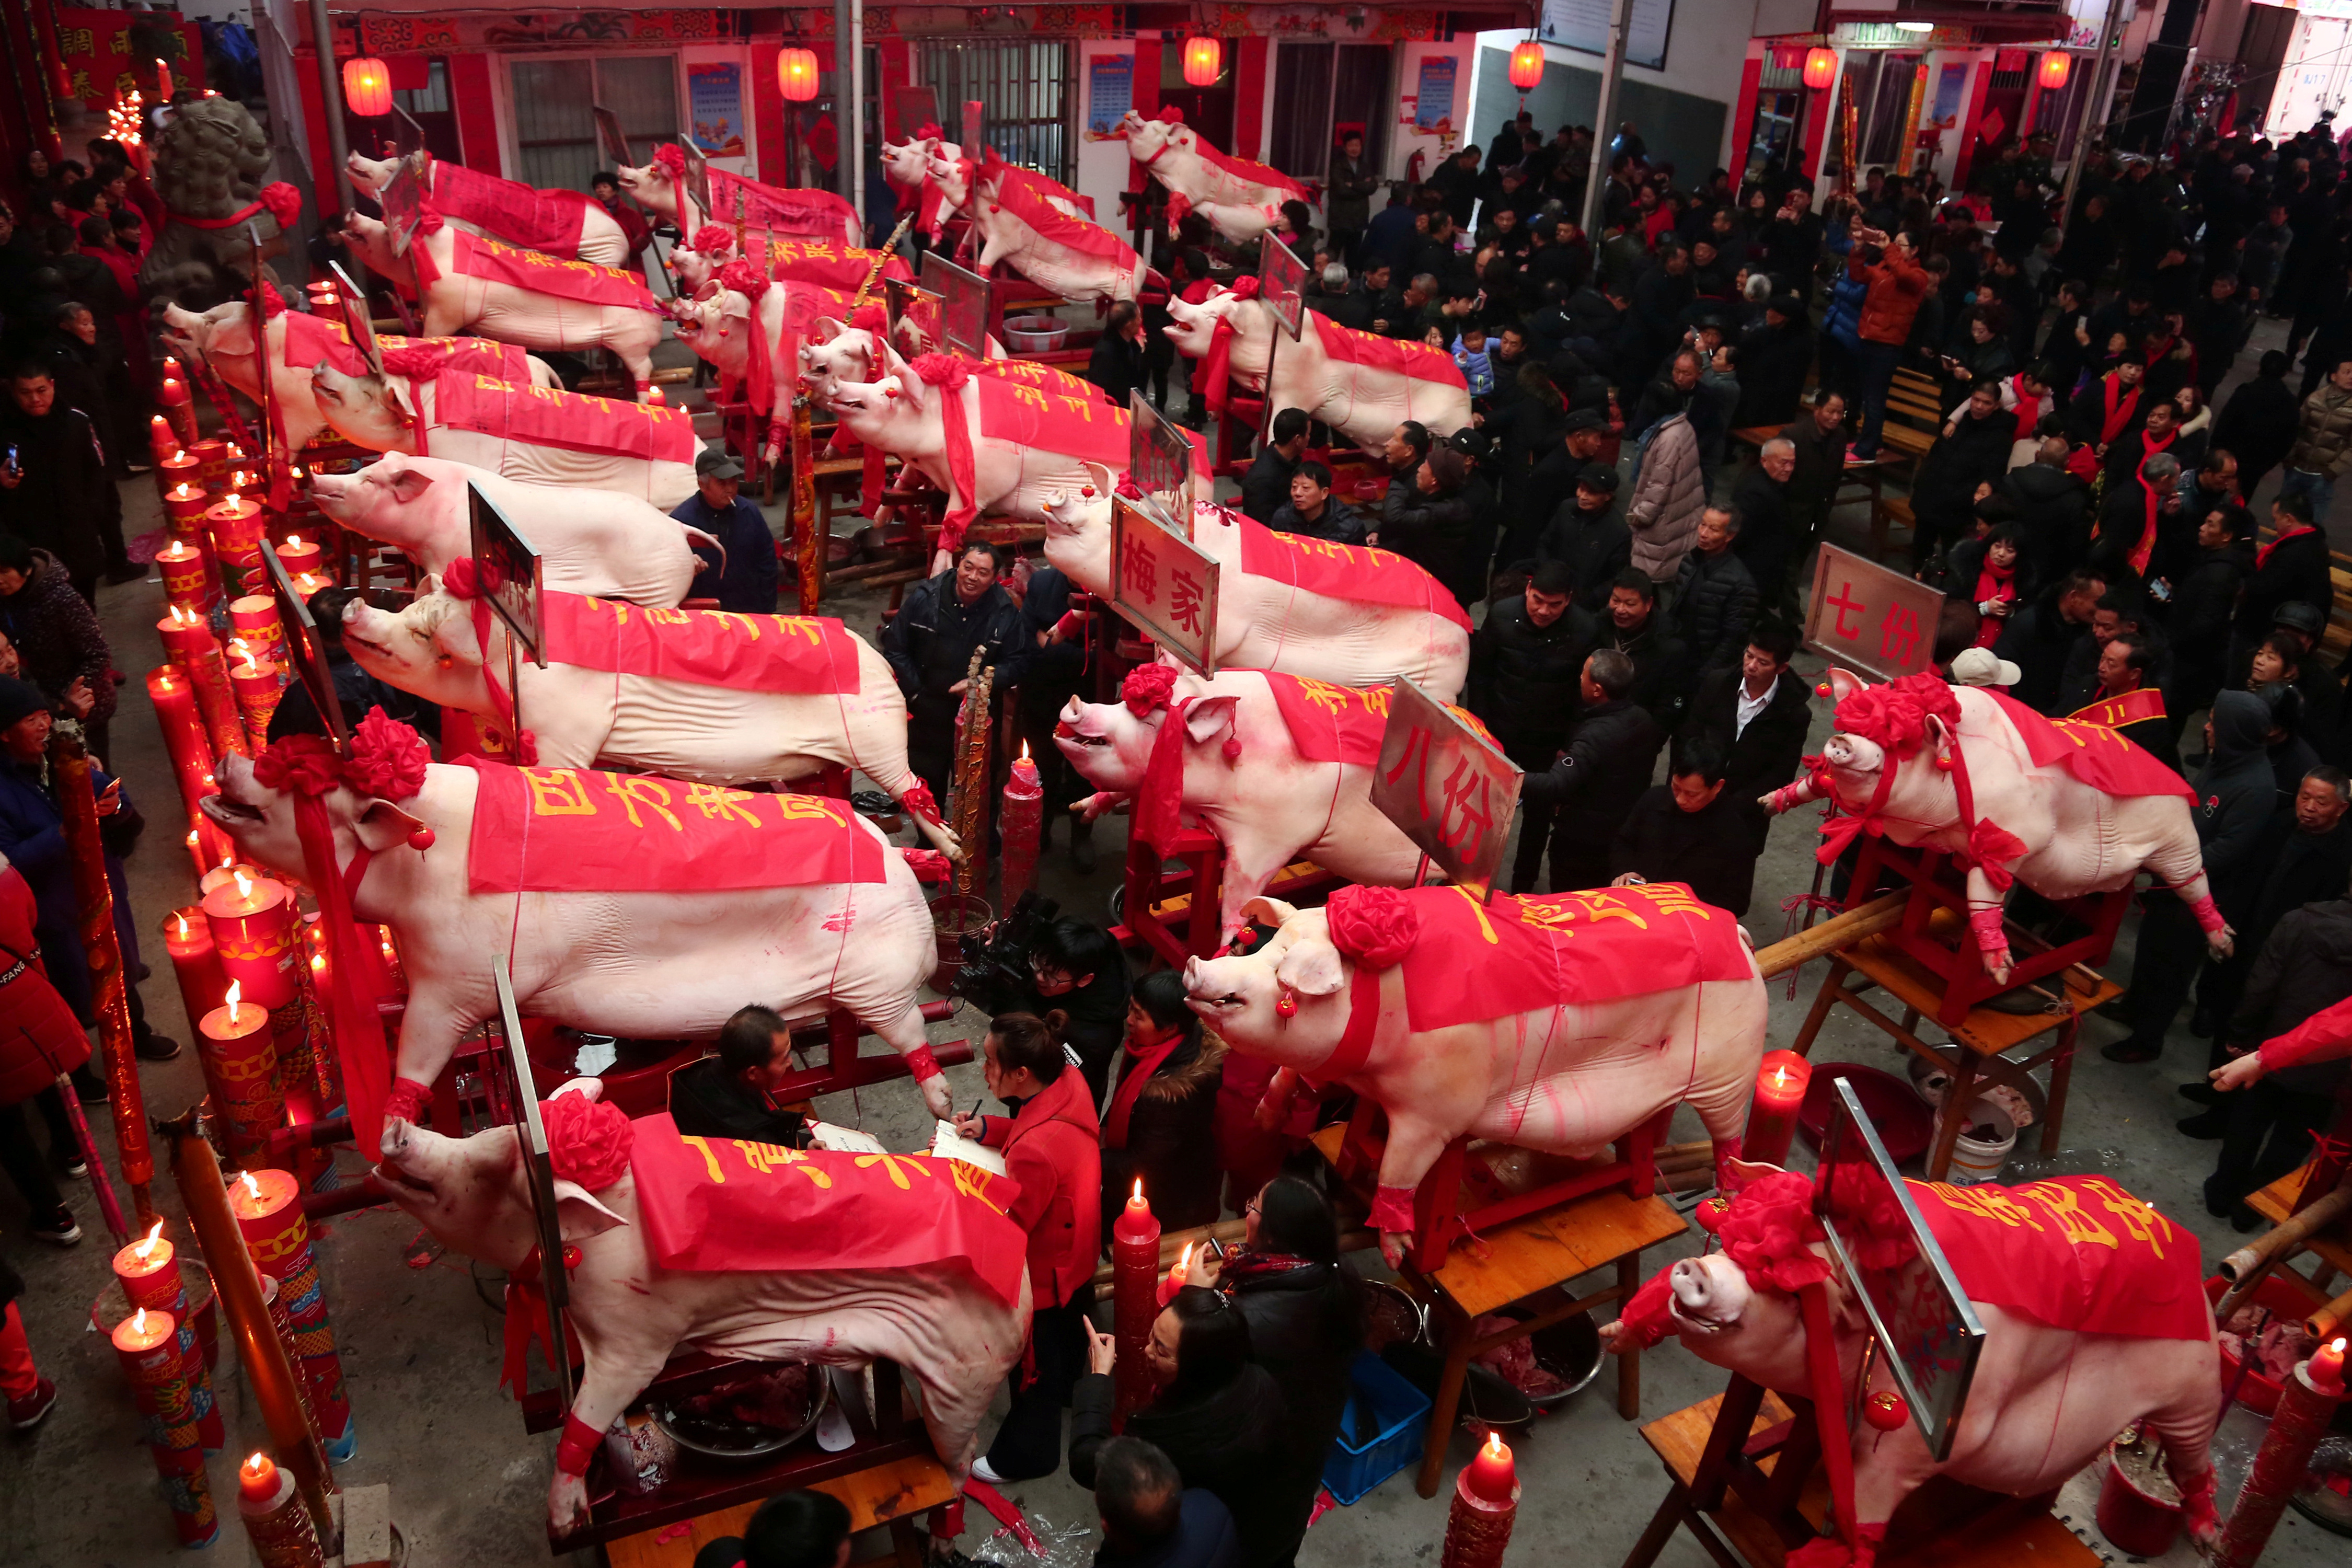 Slaughtered pigs are on display at a heaviest pig contest on the eighth day of the Chinese Lunar New Year of the pig, in Taizhou, Zhejiang province, China, Feb. 12, 2019.